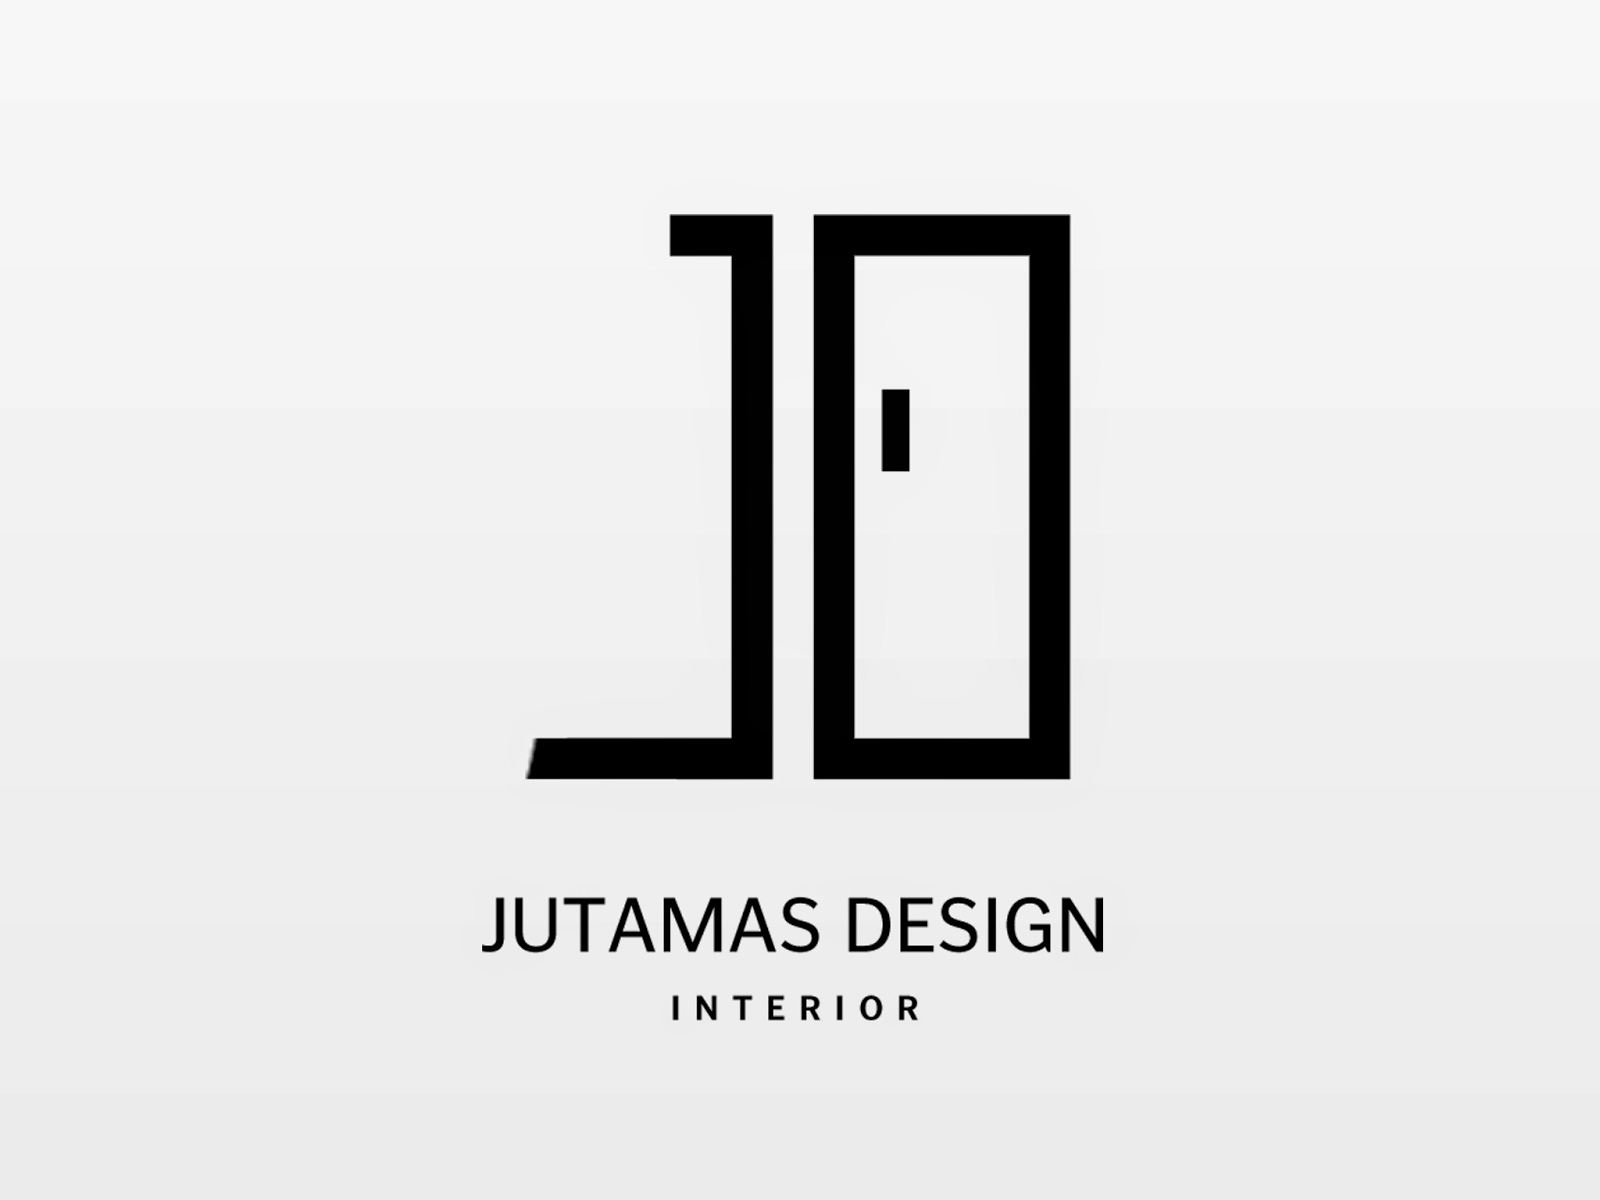 interior design logos ideas for your inspiration interior design